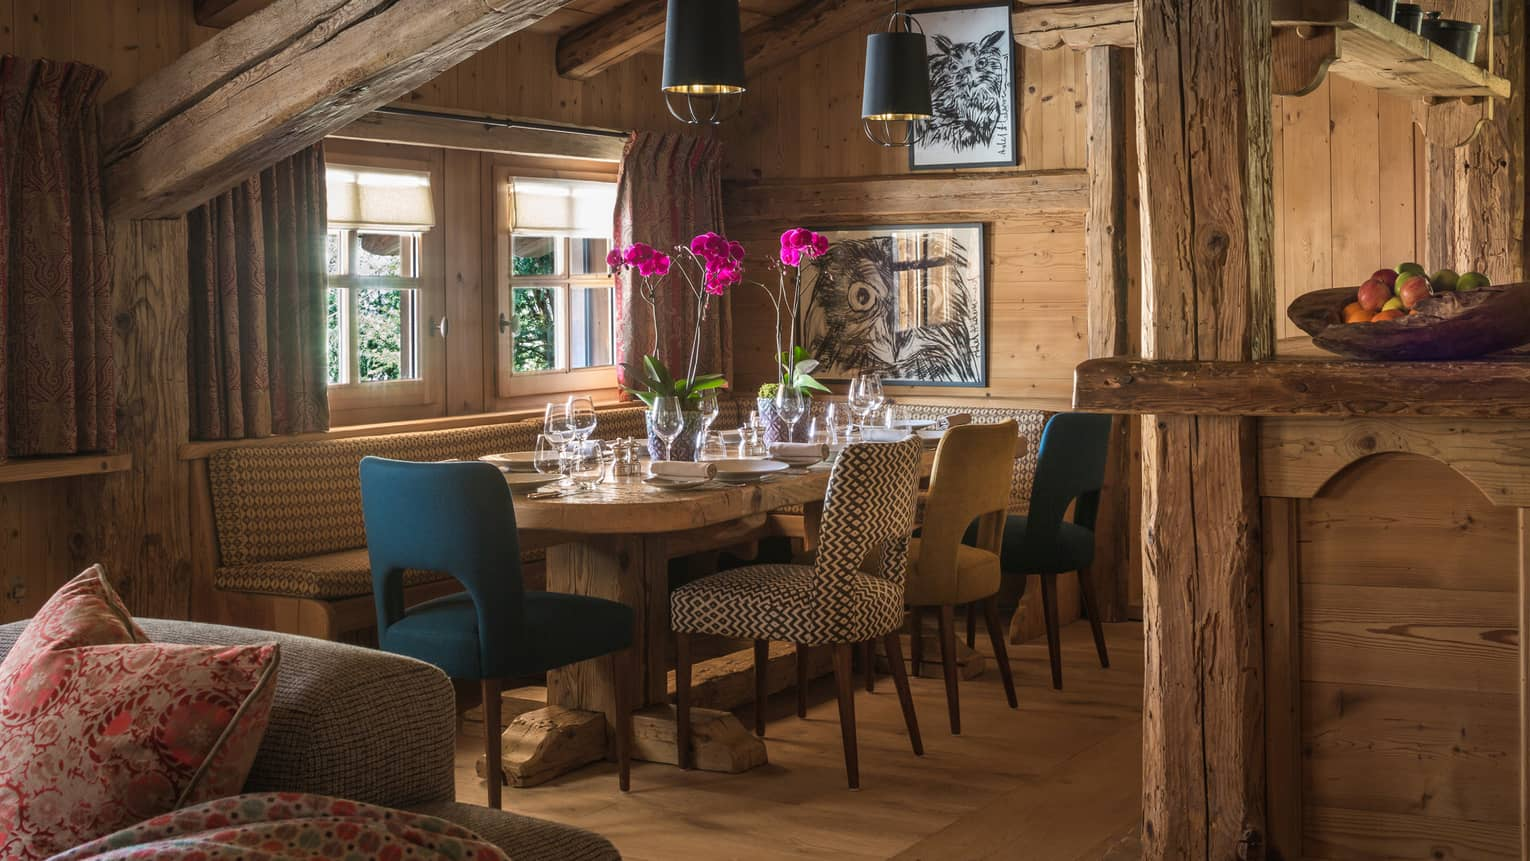 Private dining table, chairs and cushioned banquette in timber kitchen